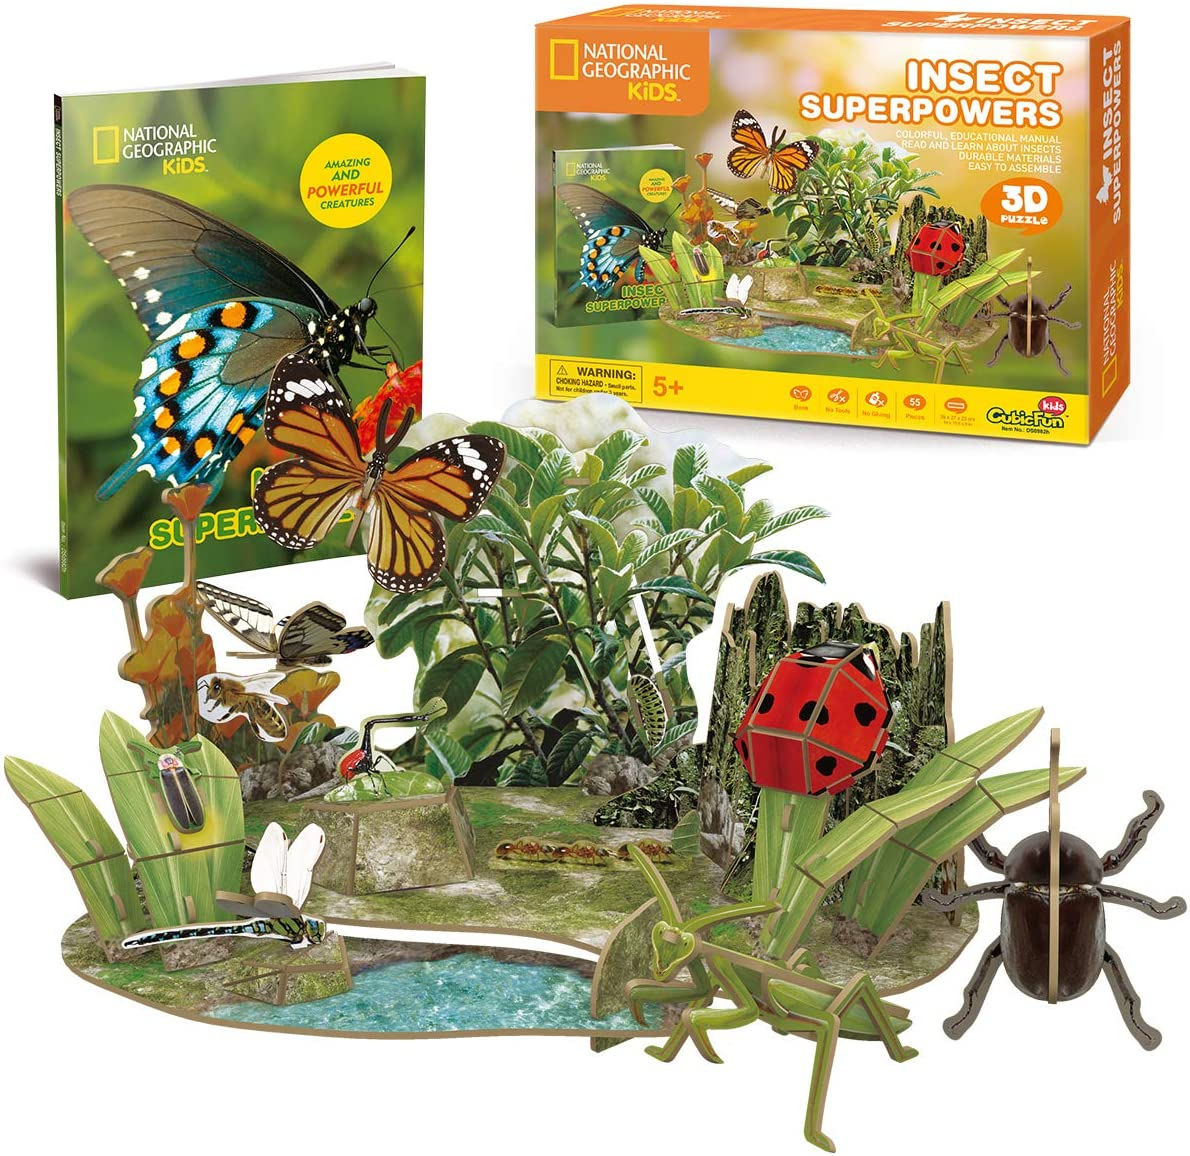 Cubicfun National Geographic 3D Puzzle Insect Science Model for Kids with Booklet, Insect Superpowers